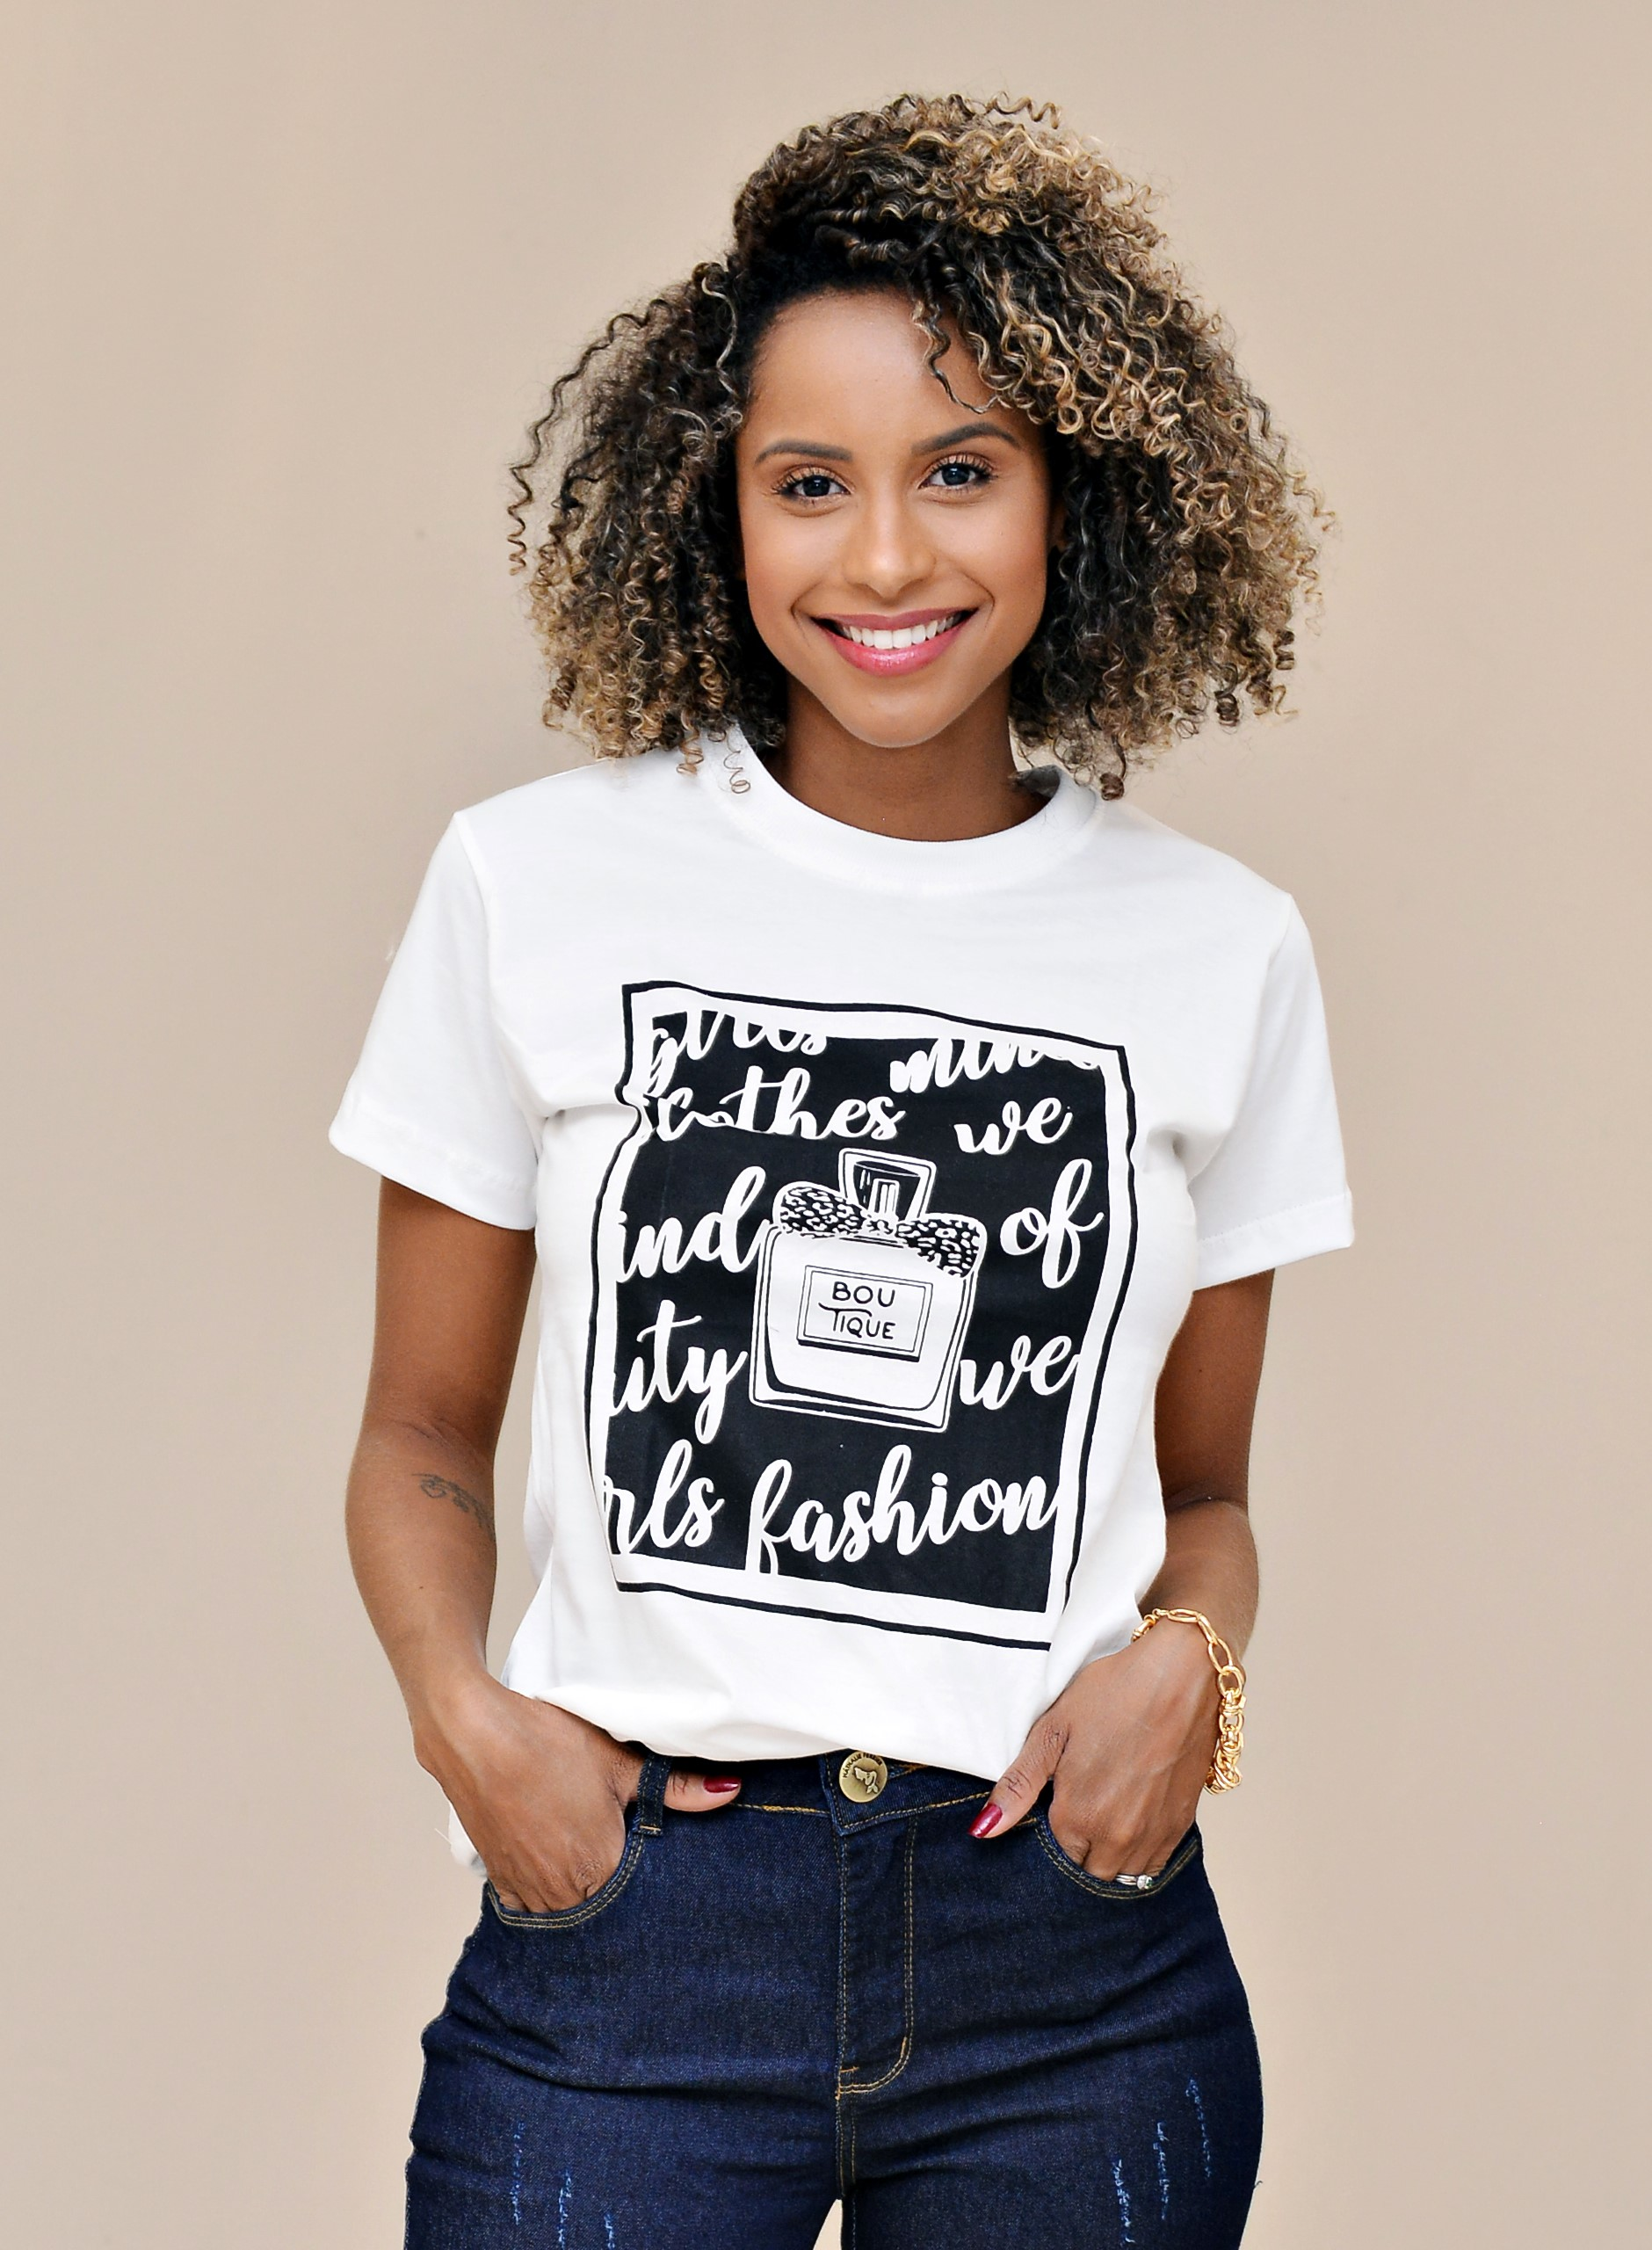 T-SHIRT BOUTIQUE - NATHALIE FERRIER